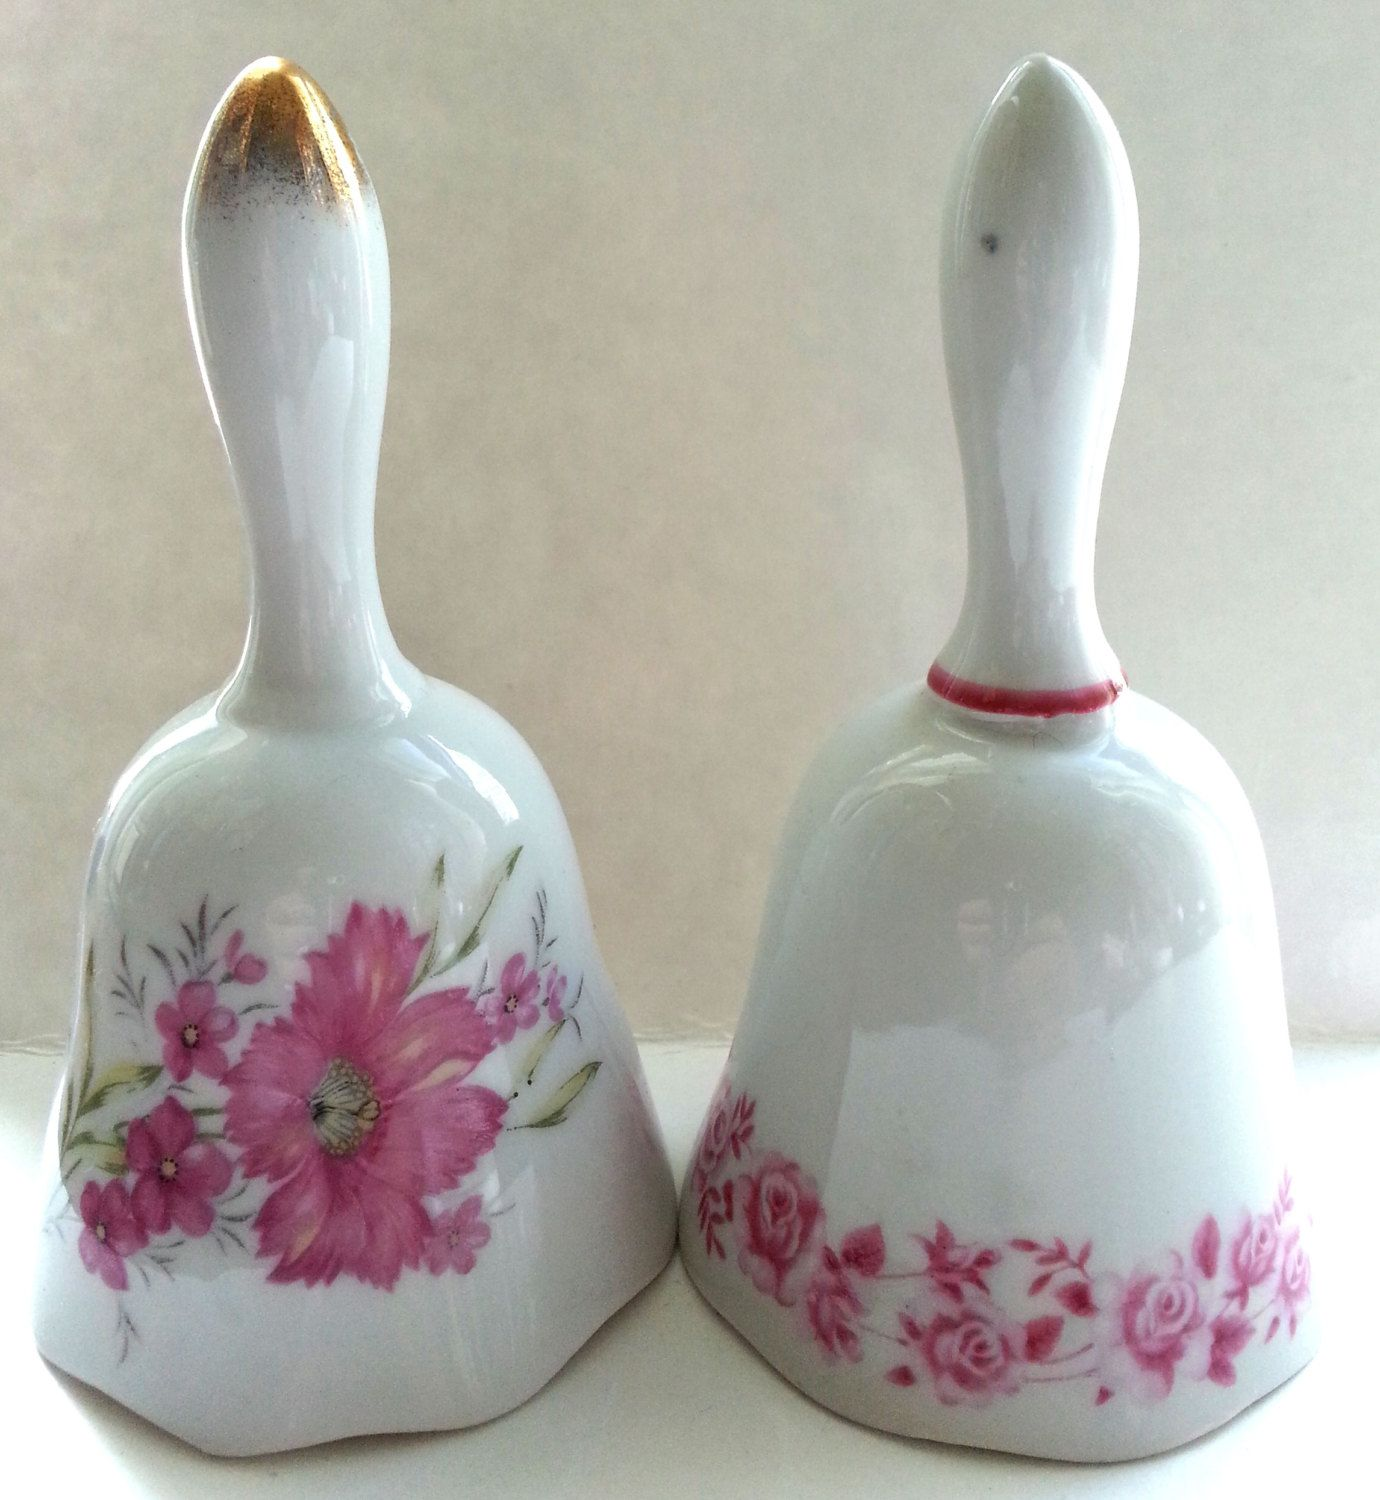 2 Pink Floral Porcelain Bells, Mikasa China, Made in Japan by Snowyowltreasures on Etsy